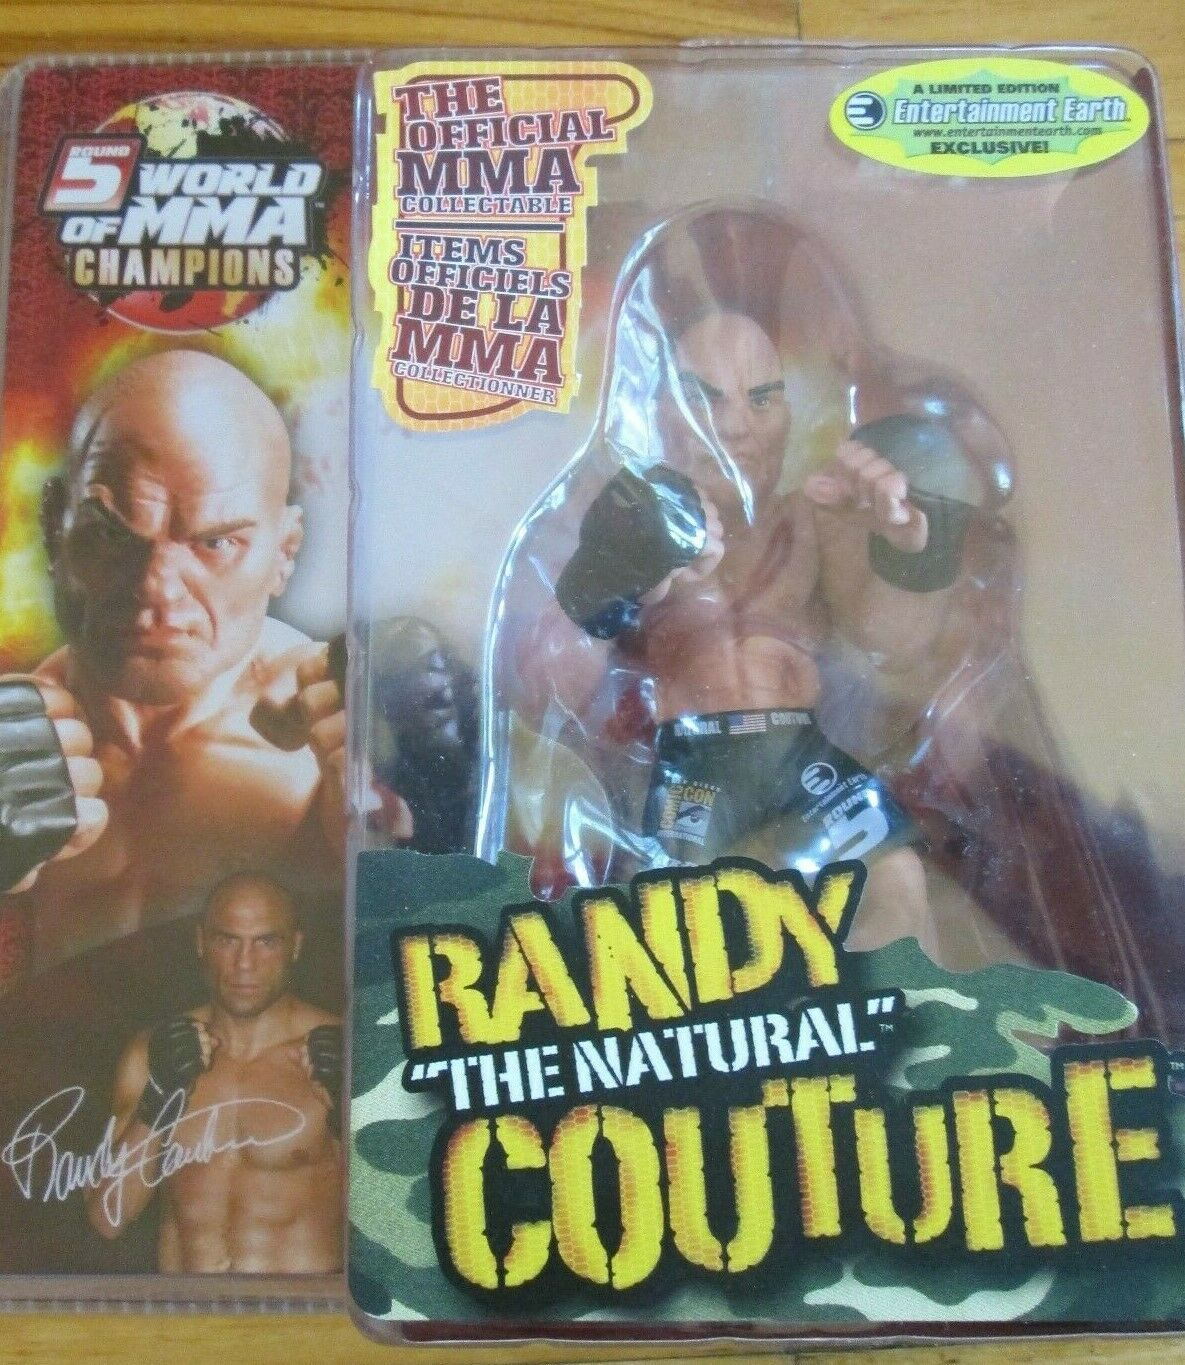 Round 5 MMA Randy Couture Green Shorts Variant UFC Exclusive Comic Con Figure